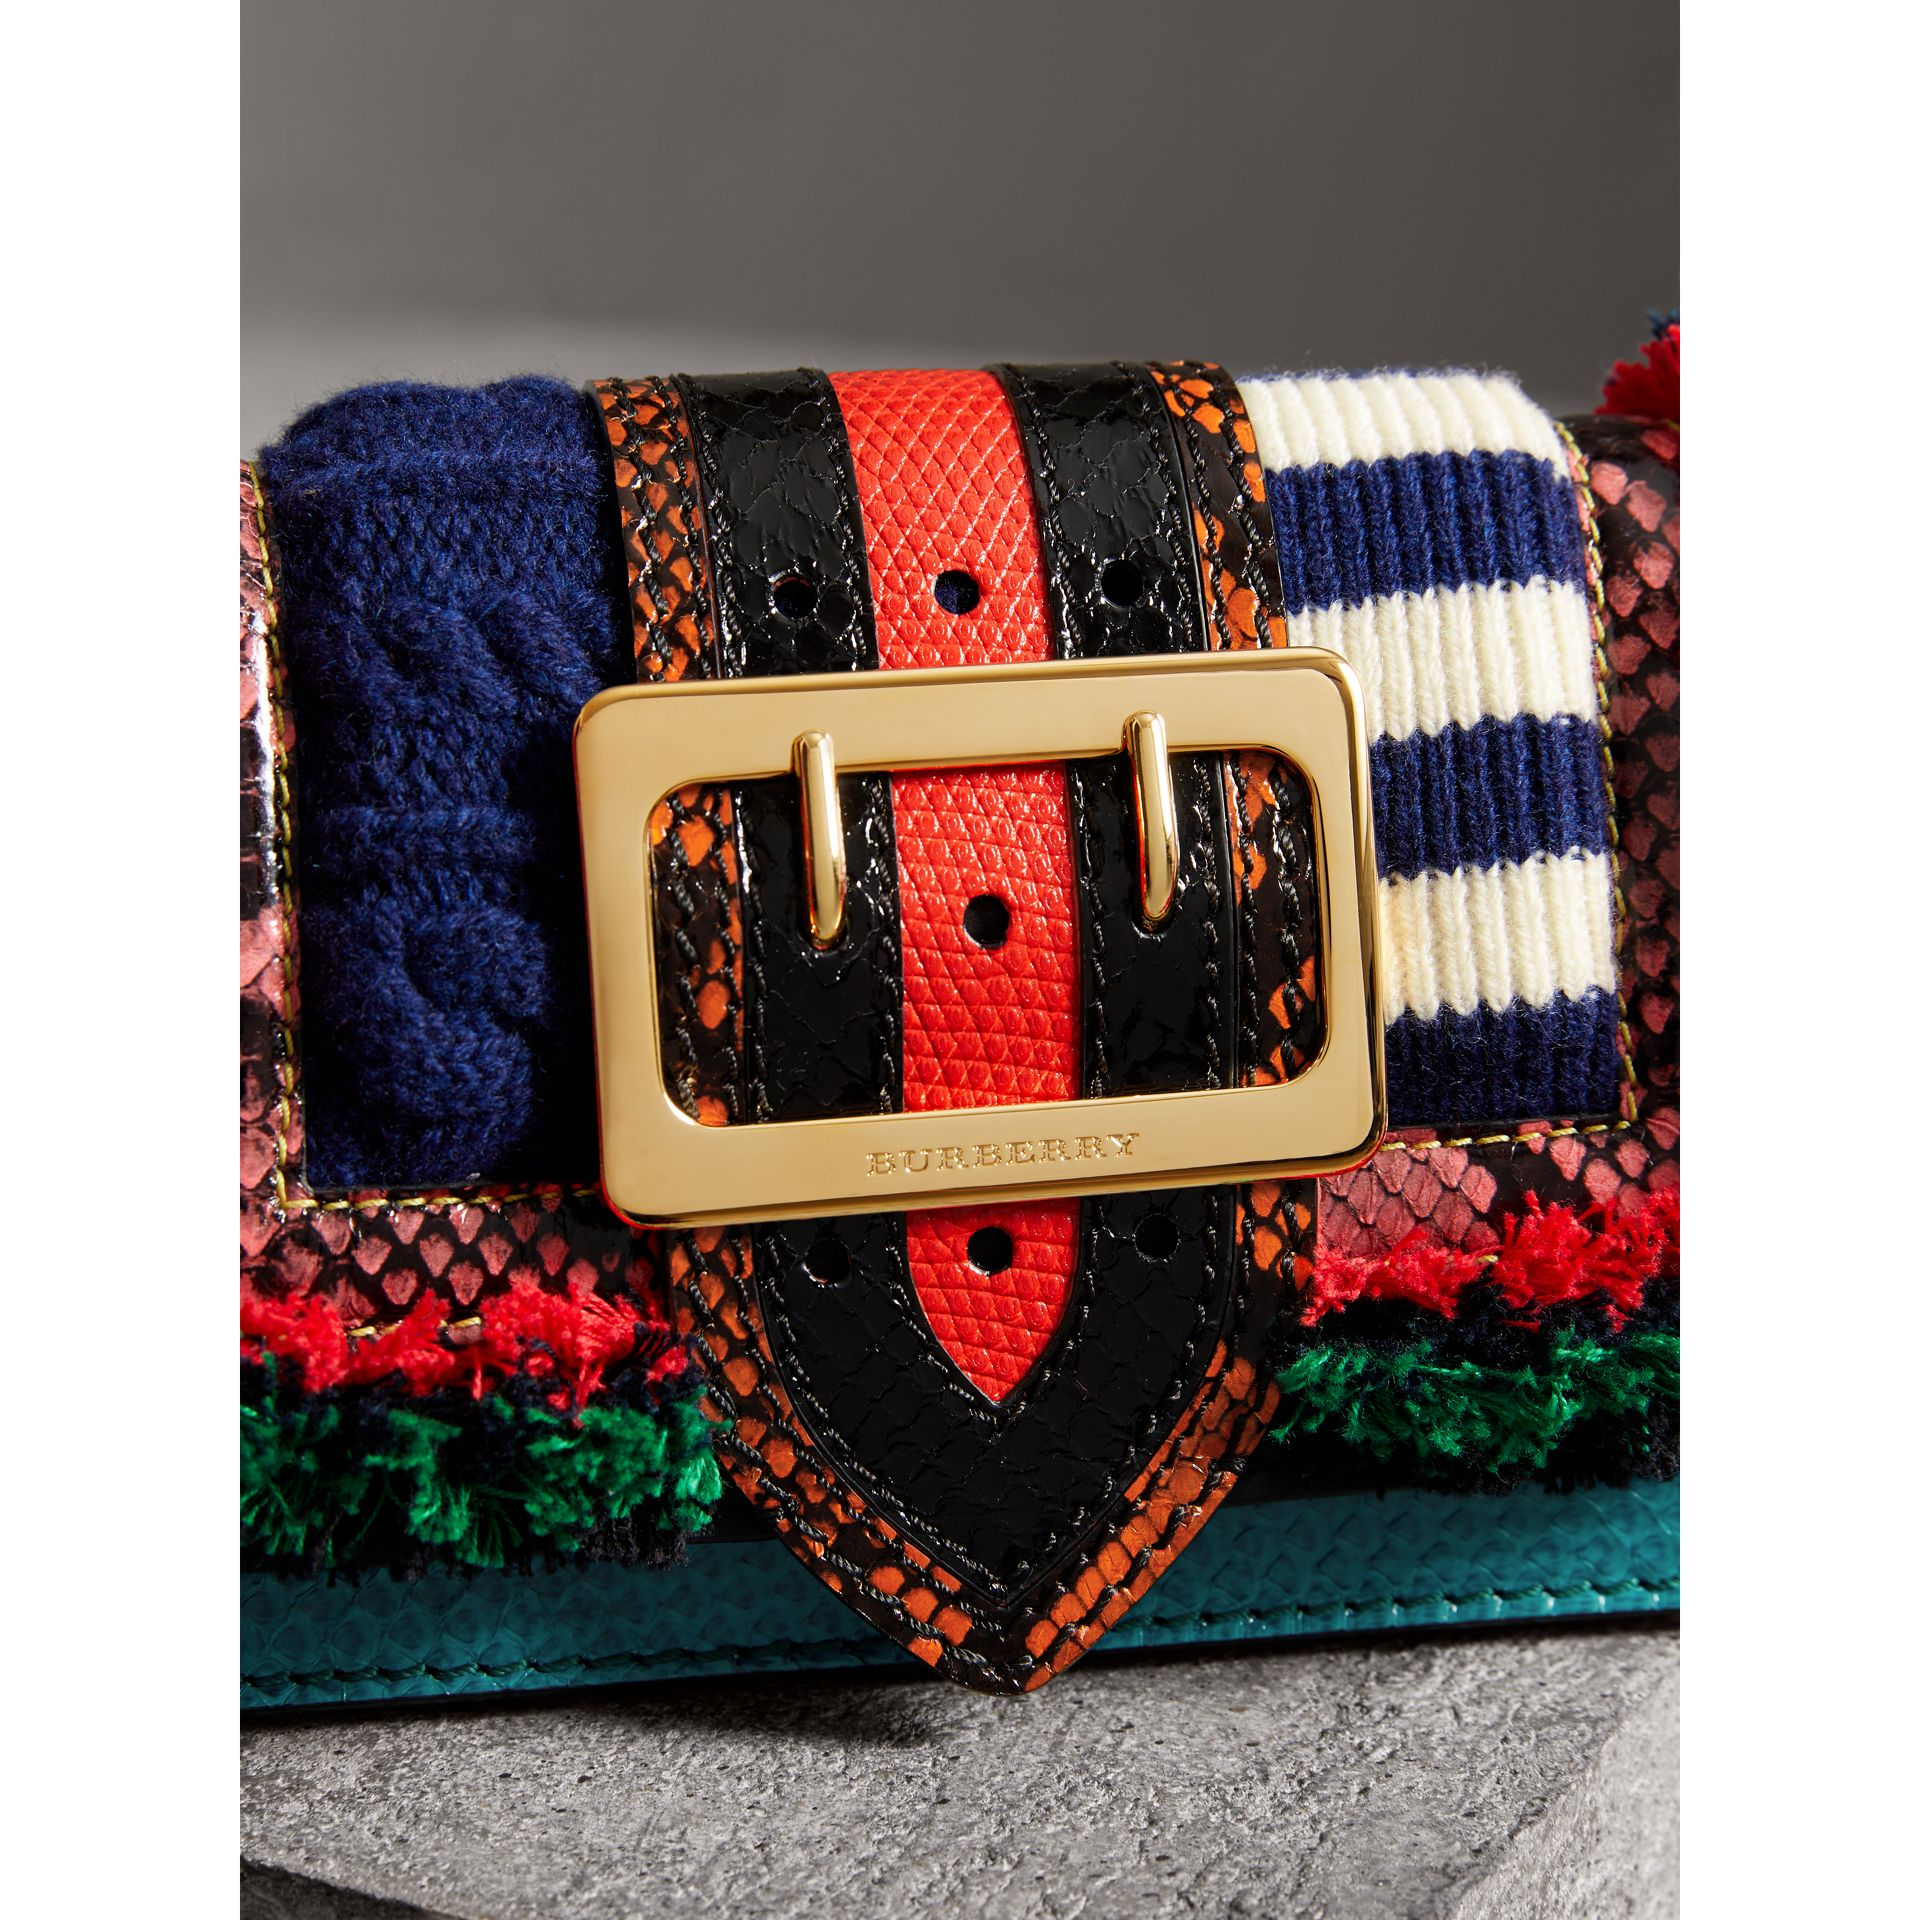 Sac The Patchwork en cuir exotique et maille de laine (Multicolore) - Femme | Burberry - photo de la galerie 1